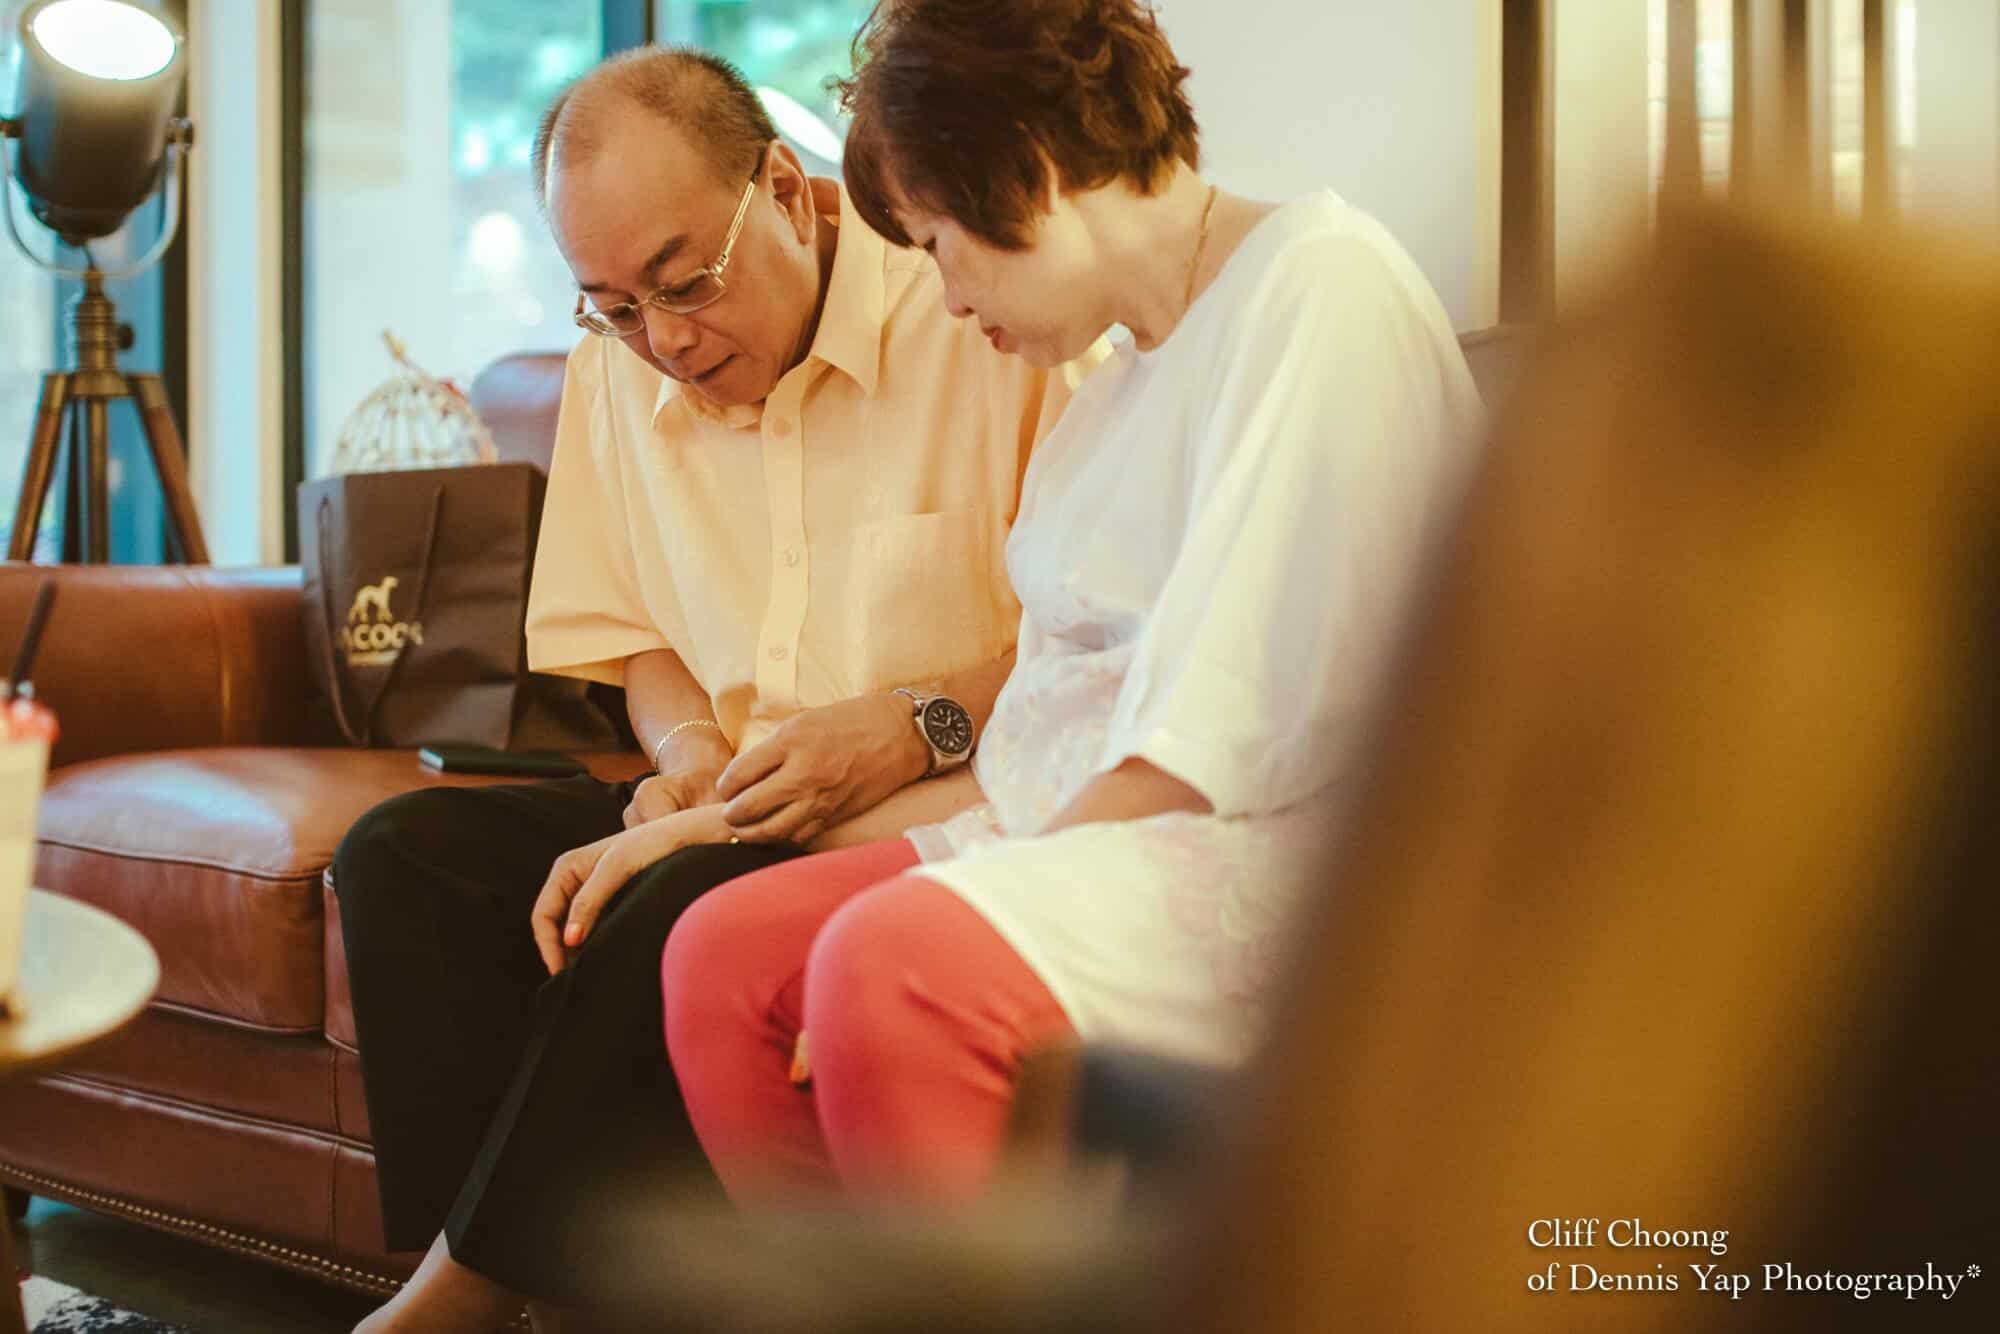 Wedding day in Kuala Lumpur Kota Kemuning Malaysia Cliff Choong Photography Bride getting ready parents love